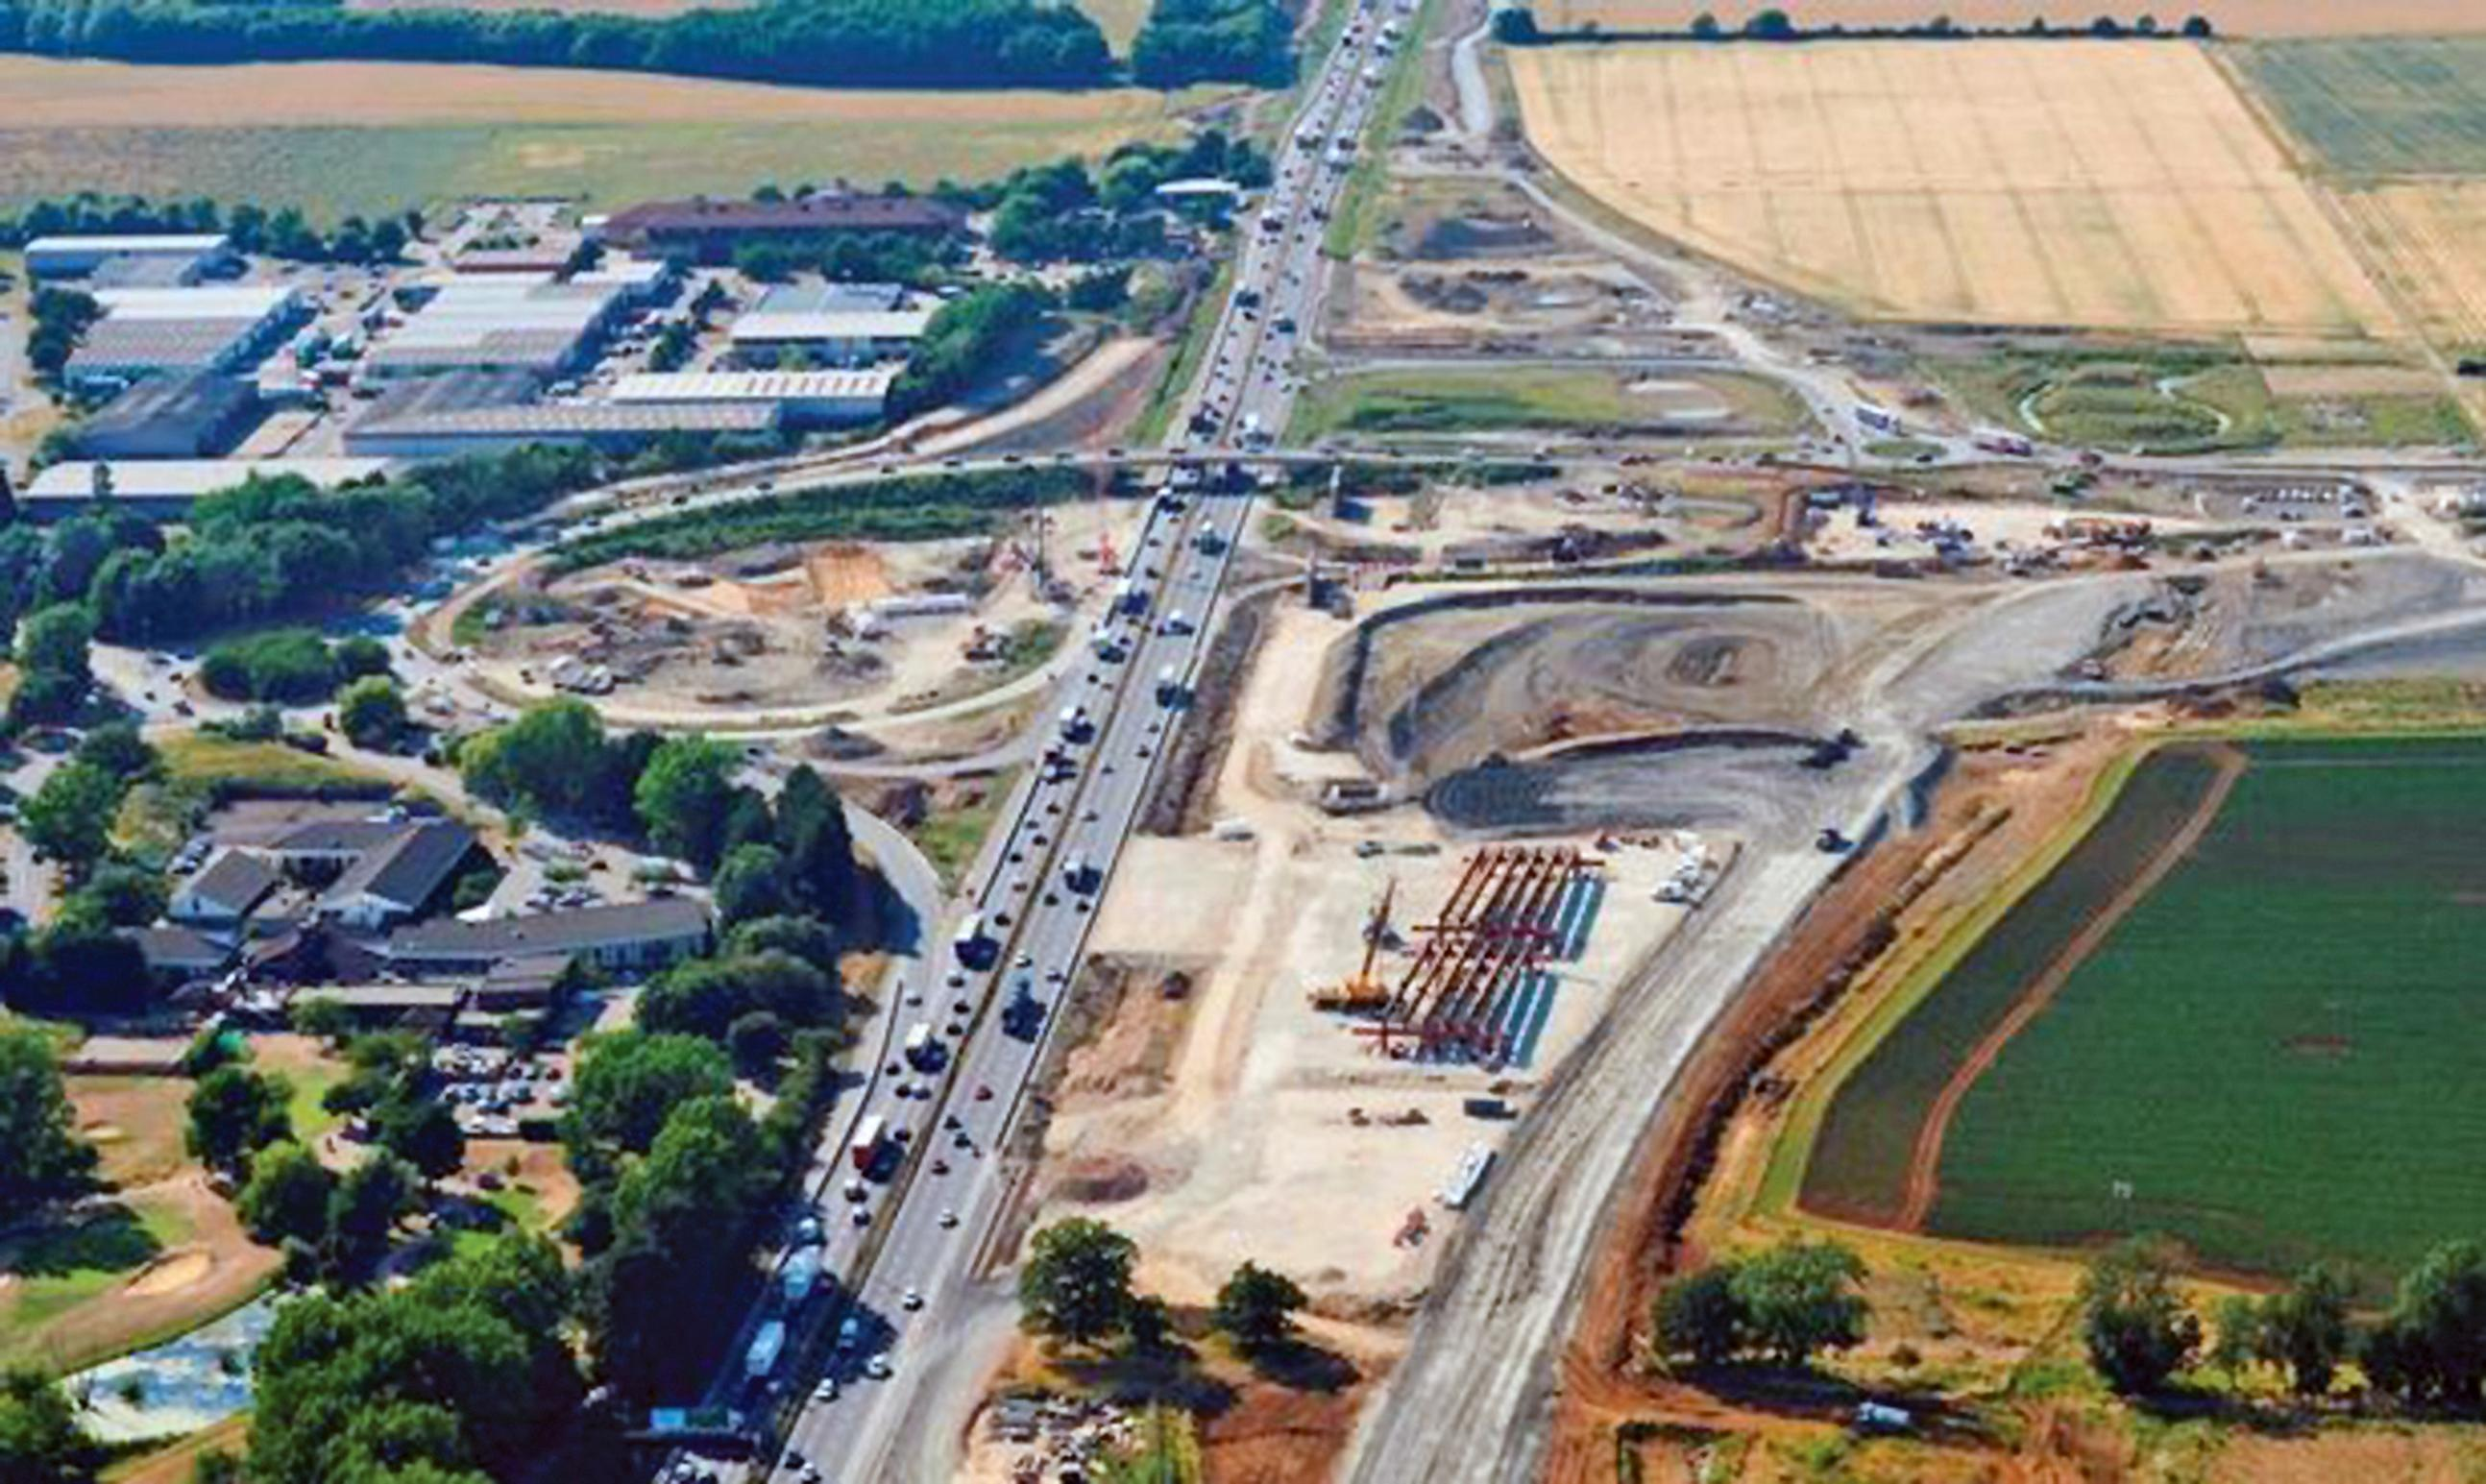 The A14 improvements